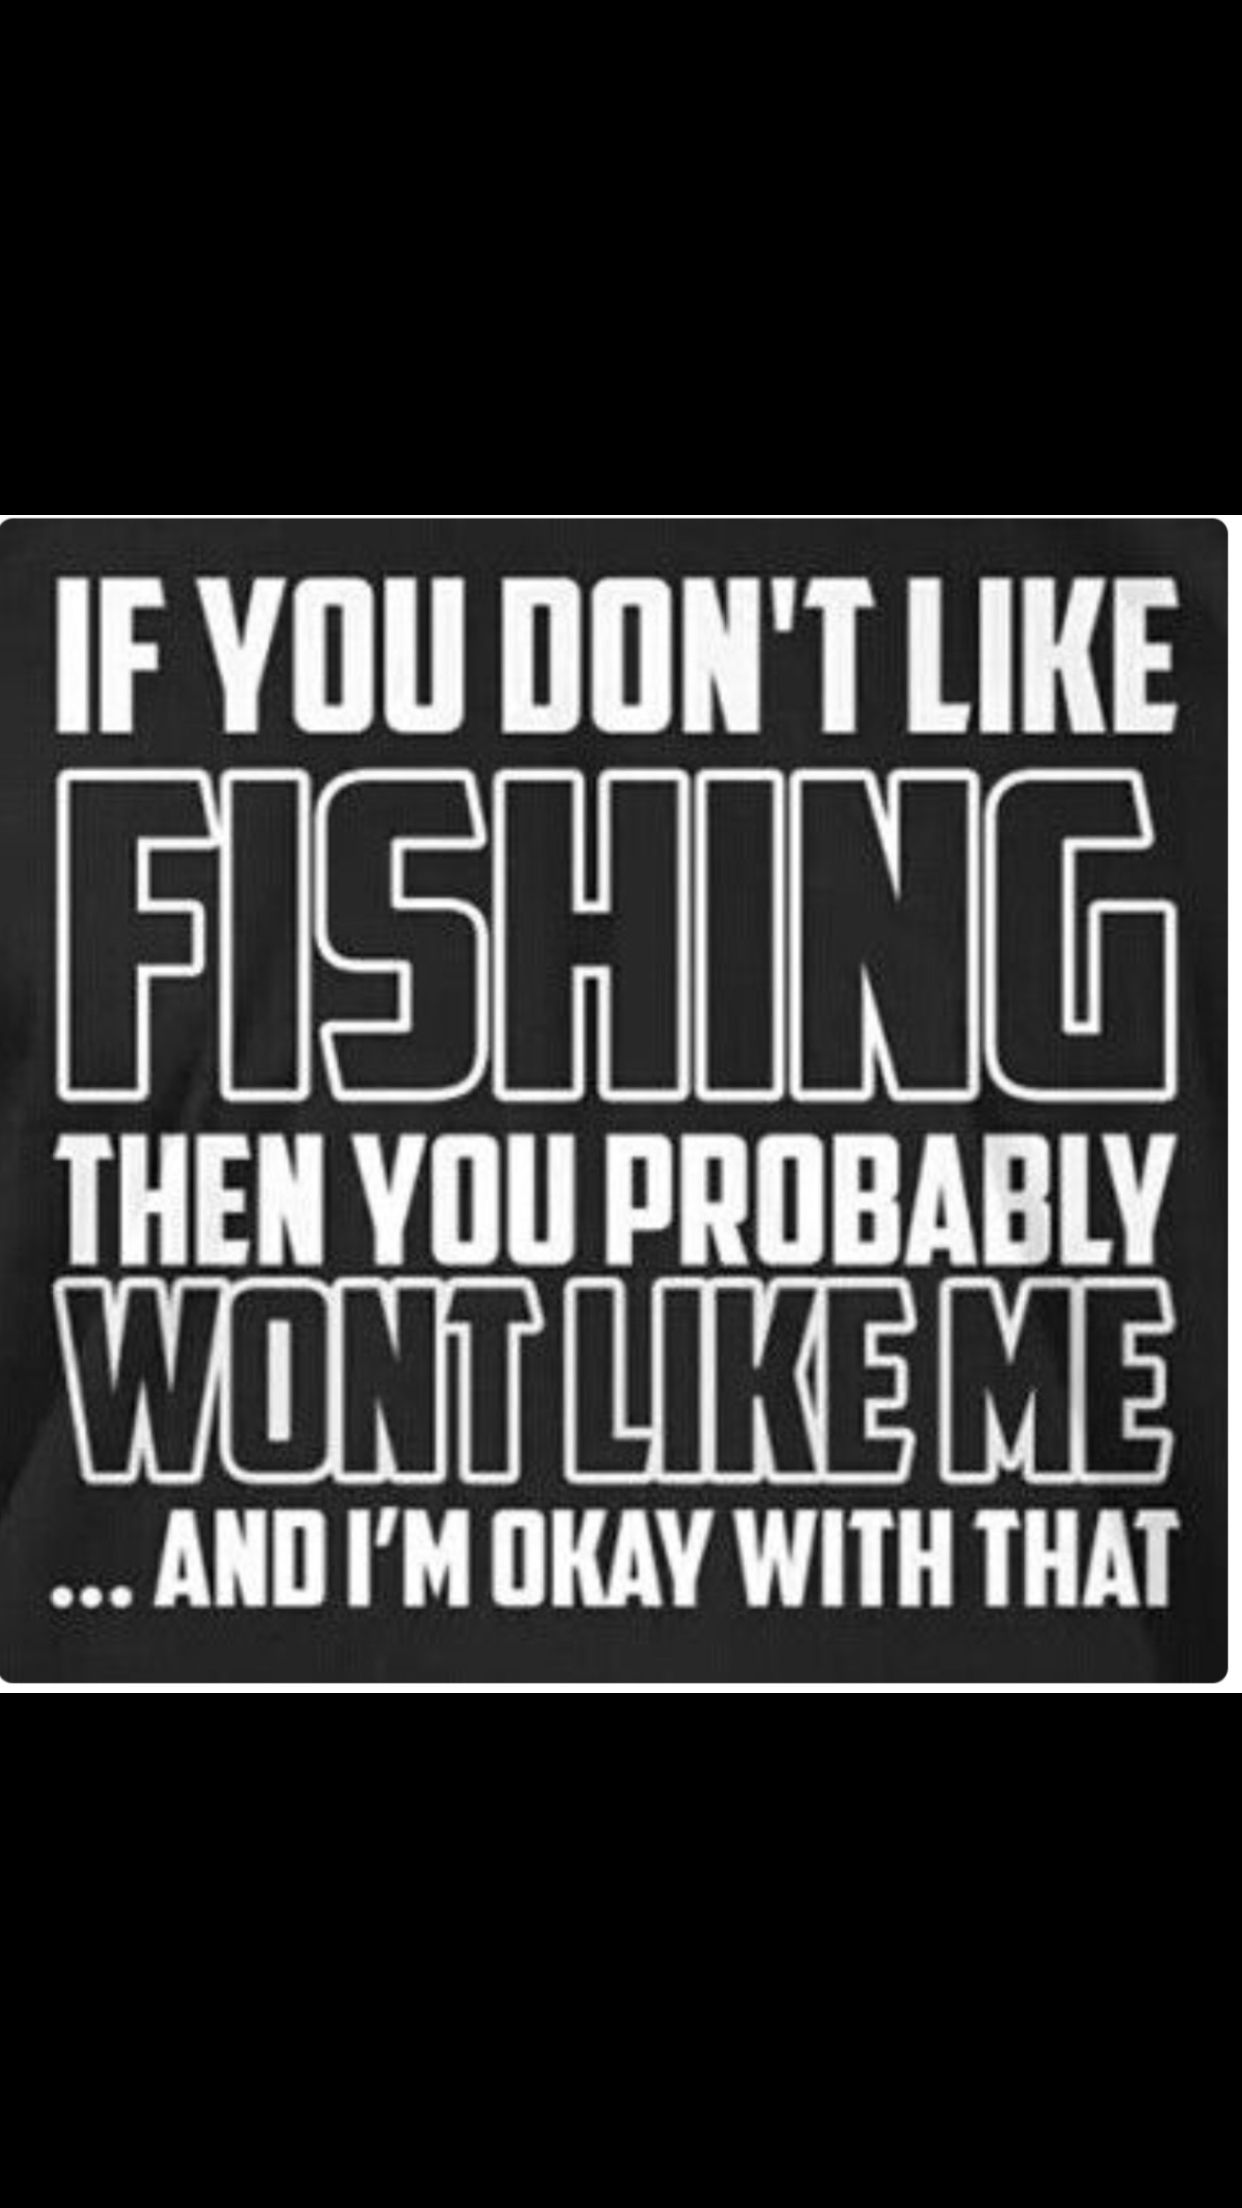 Fishing Sayings Quotes and Slogans